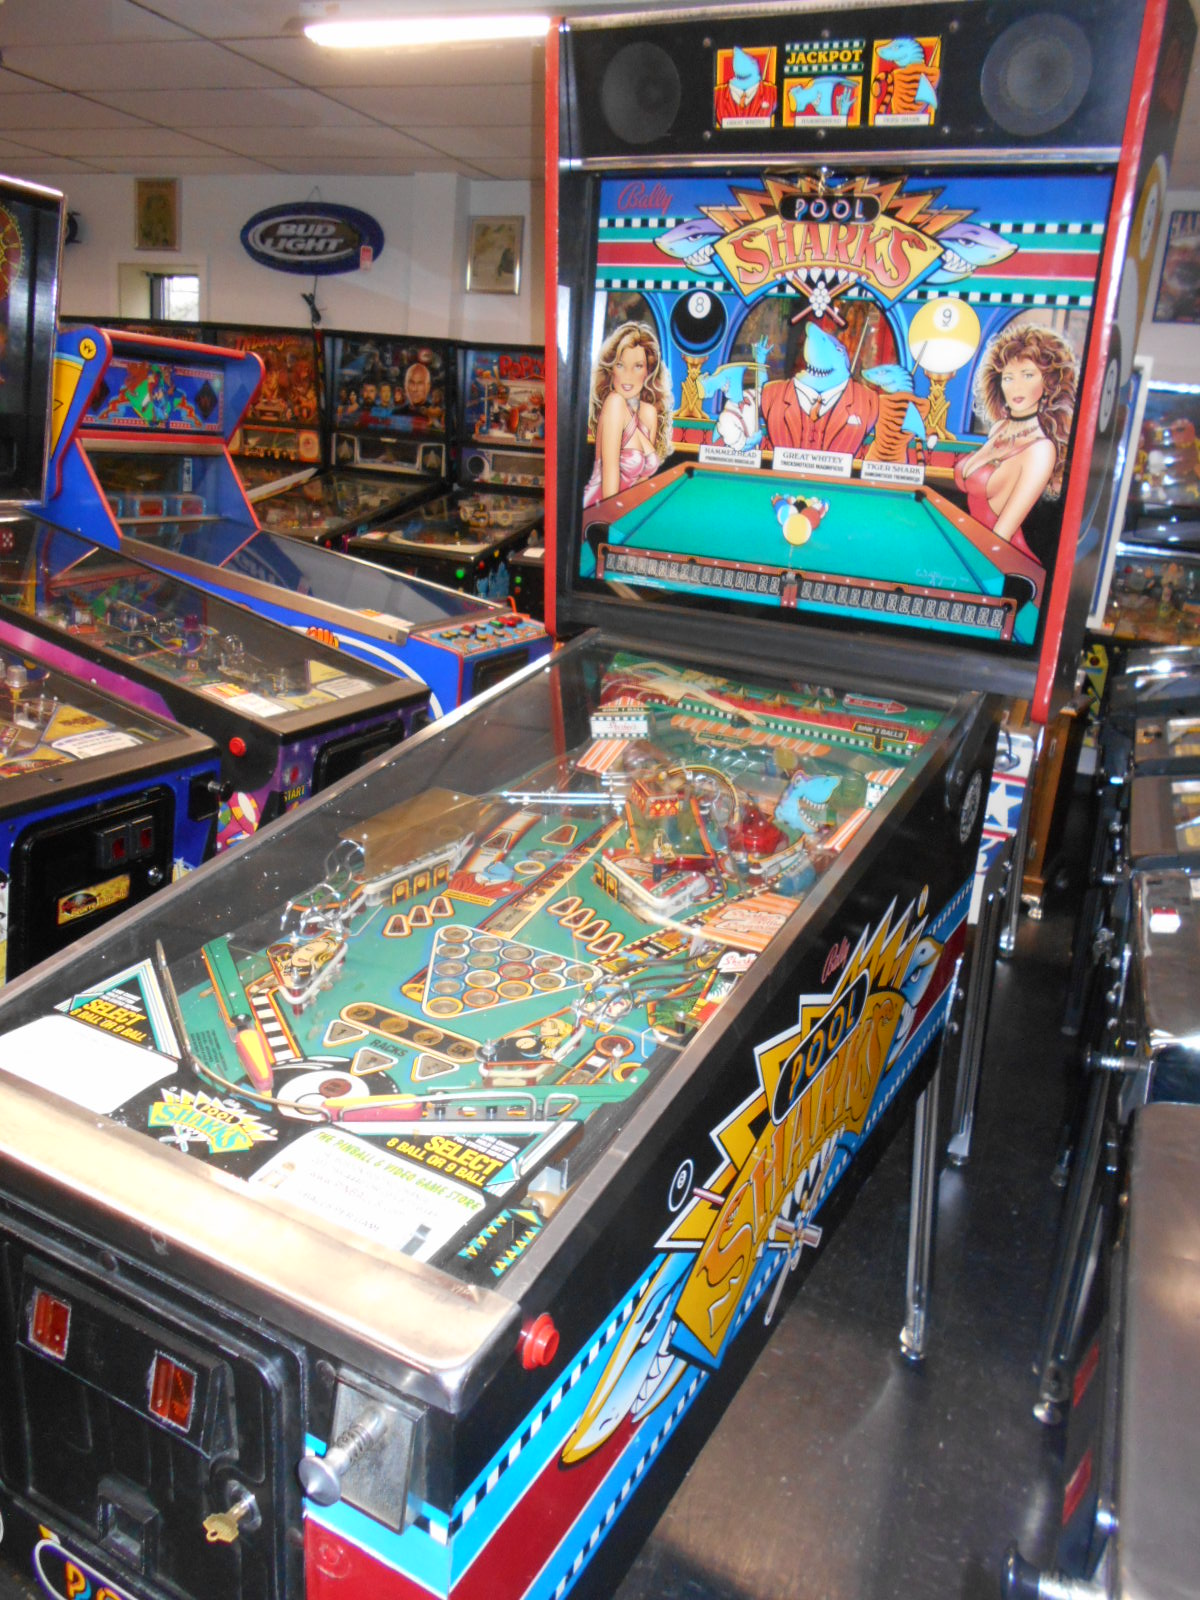 POOL SHARKS Pinball Machine Game for sale by BALLY - LED DISPLAY - 2 GAMES IN 1 - PICK EIGHT OR